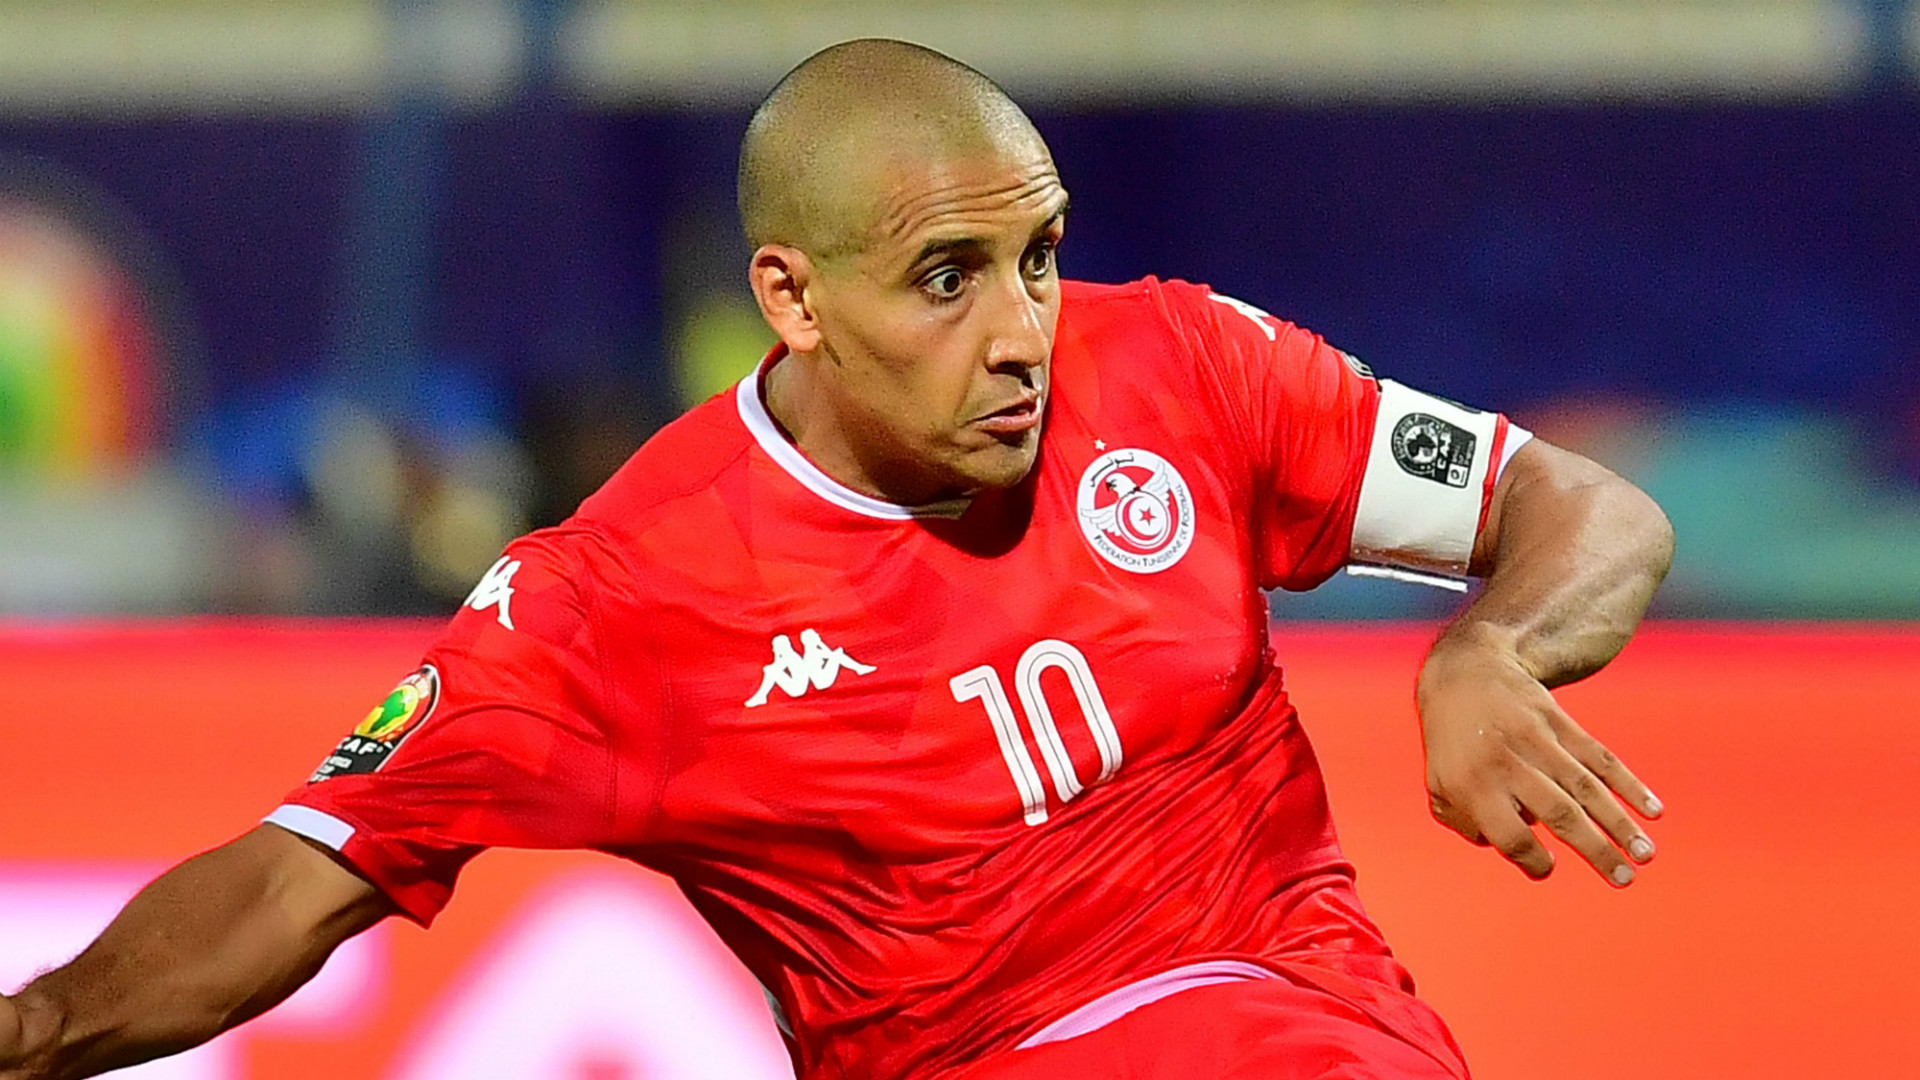 Afcon 2019: Wahbi Khazri and other Tunisia players to watch for against Nigeria